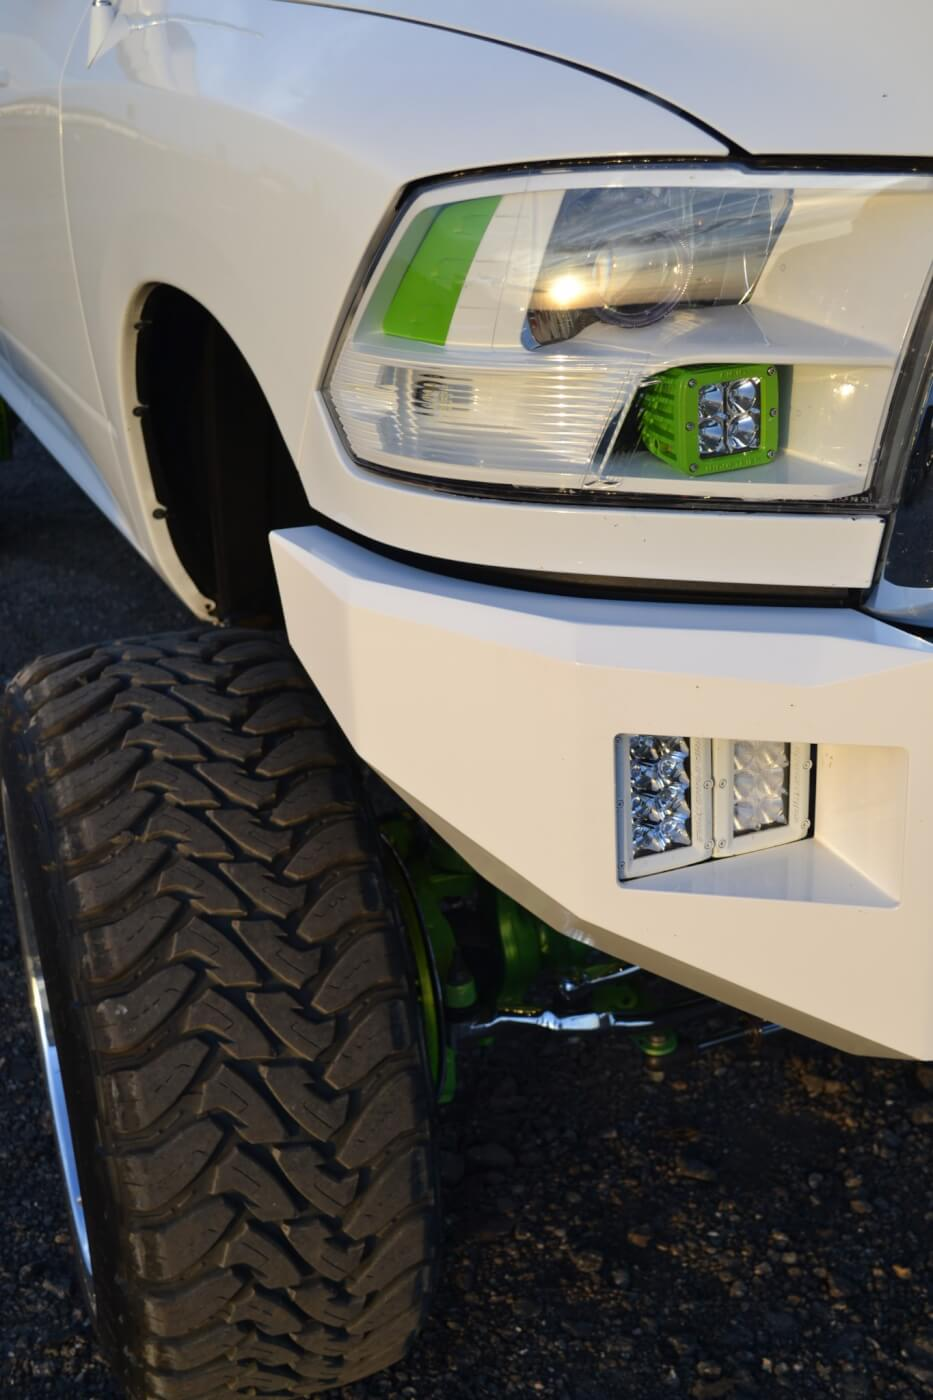 Small details are integrated into the '12 that might not be noticed right away. The headlights for instance, were matched to the rest of the truck by Out of Body Solutions in Modesto, California.